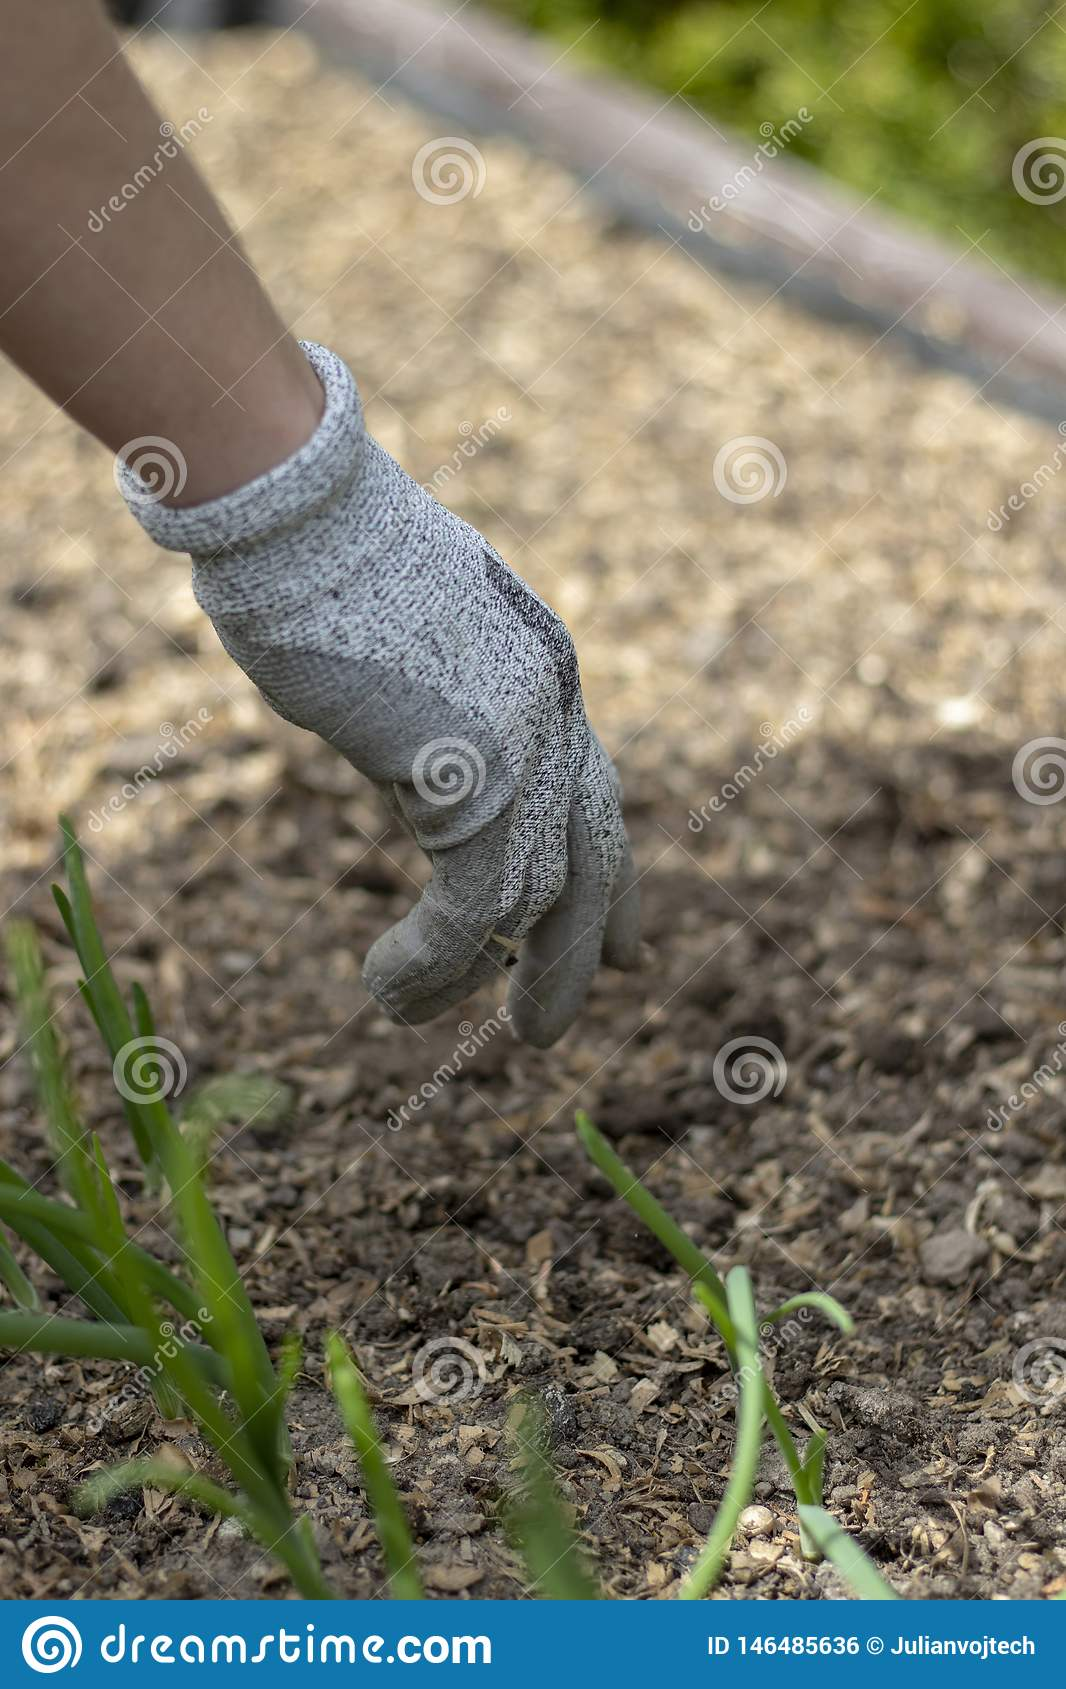 Woman wearing protective gloves, planting in the ground